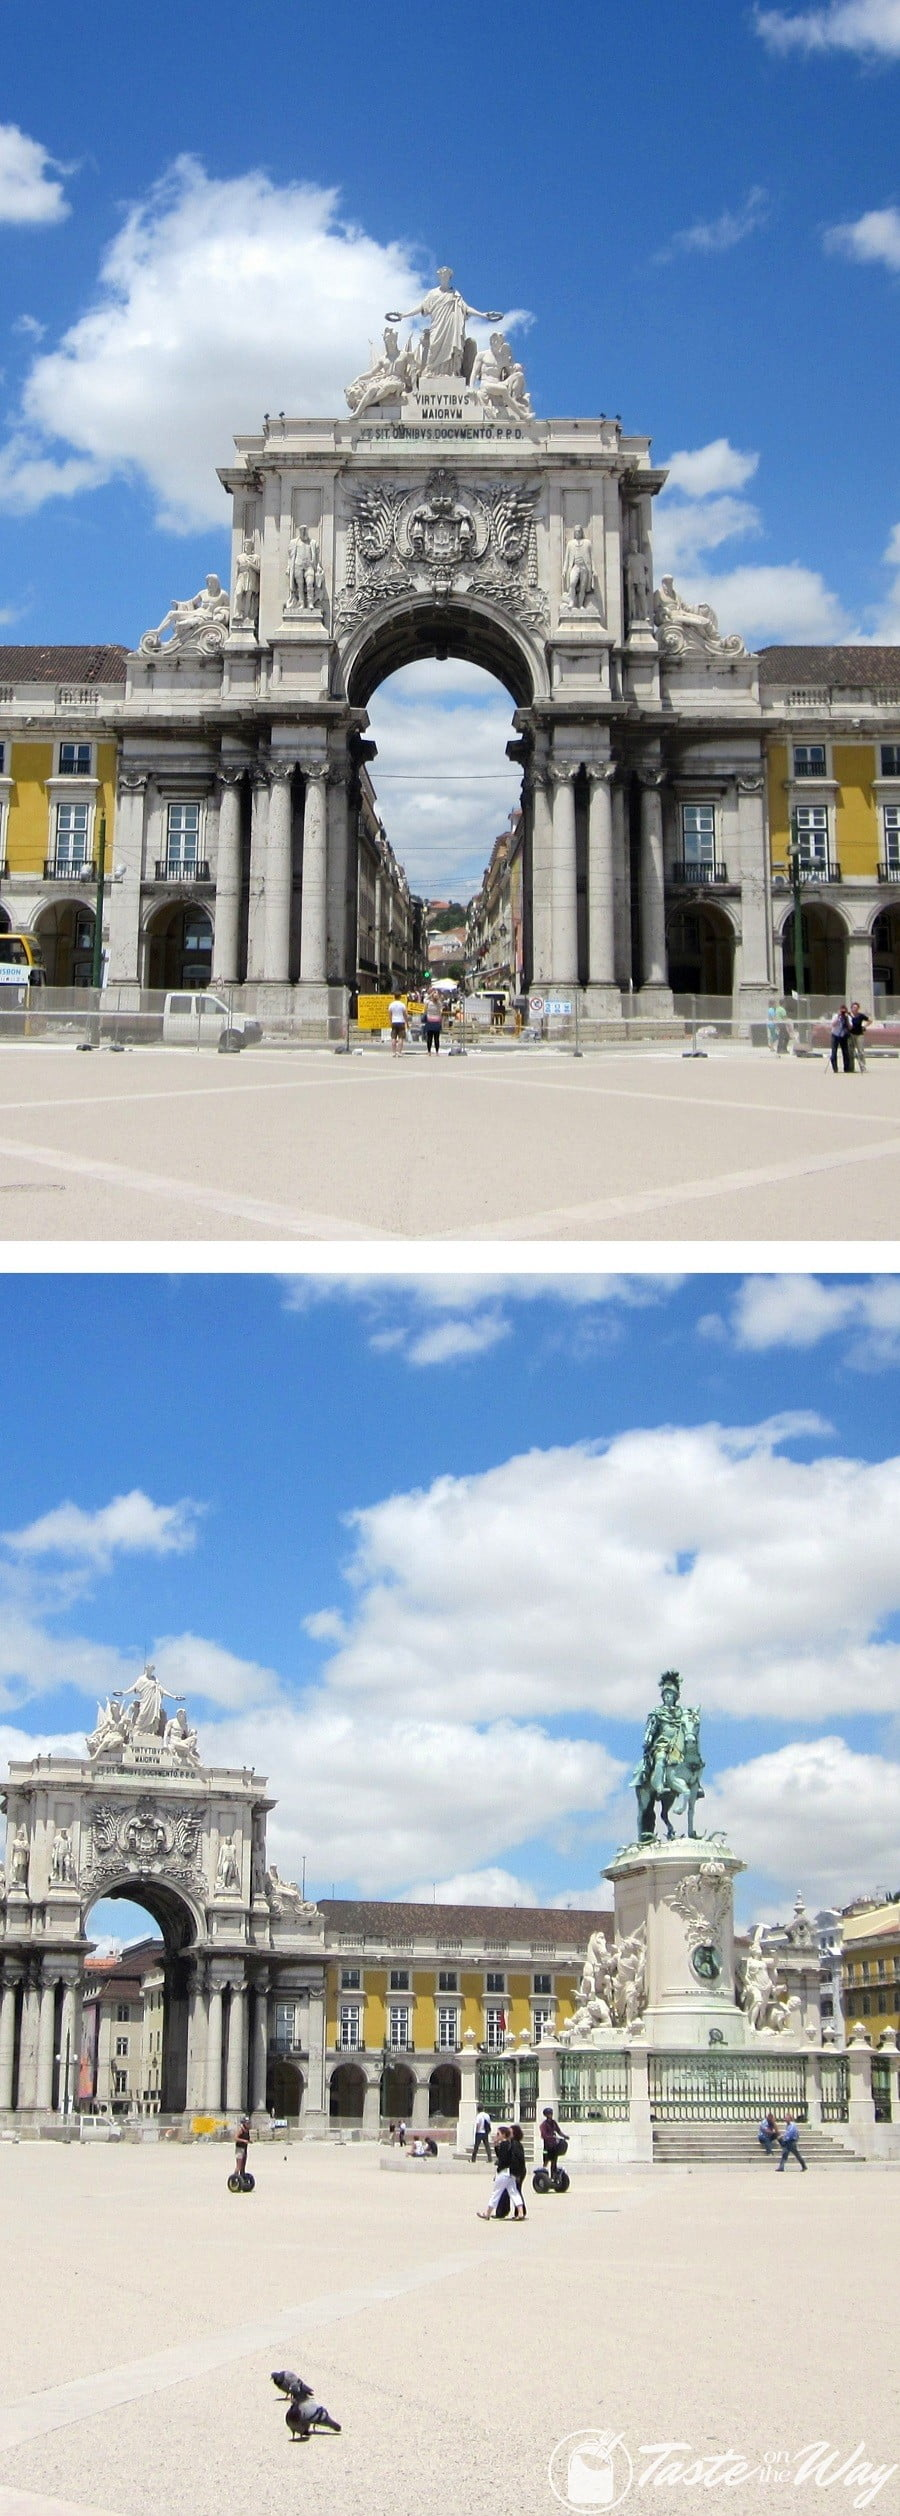 One of the top fun #thingstodo in #Lisbon, #Portugal is to have lunch at the Praca do Comercio Square. Check out for more! #travel #photography @tasteontheway